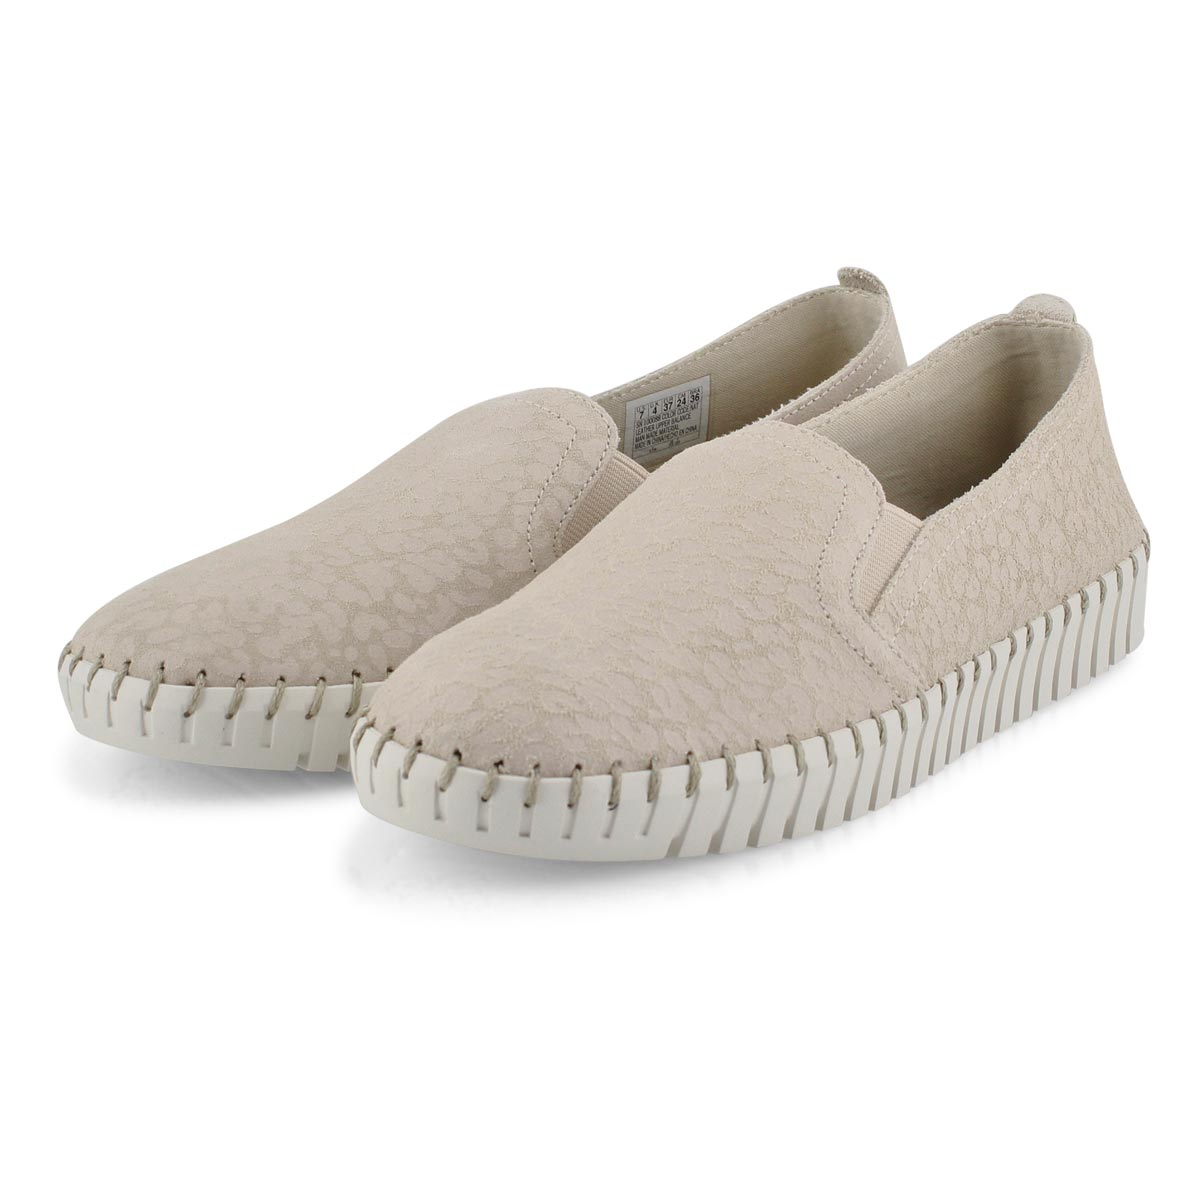 Lds Sepulveda Blvd natural slip on